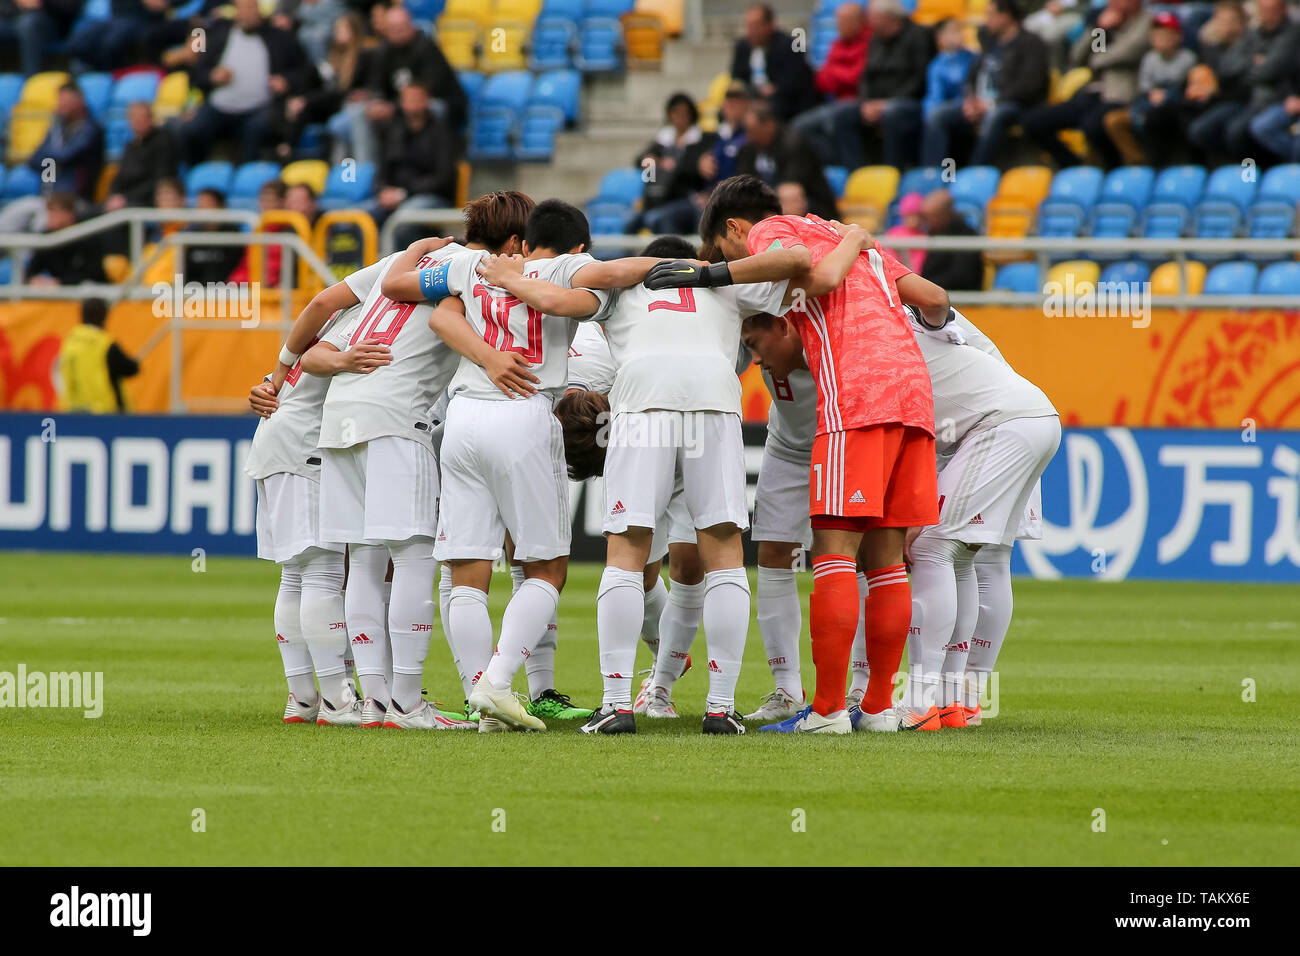 Gdynia Stadium, Gdynia, Poland - 26th May, 2019: National team of Japan seen in action during FIFA U-20 World Cup match between Mexico and Japan (GROUP B) in Gdynia. (Final score; Mexico 0:3 Japan) - Stock Image